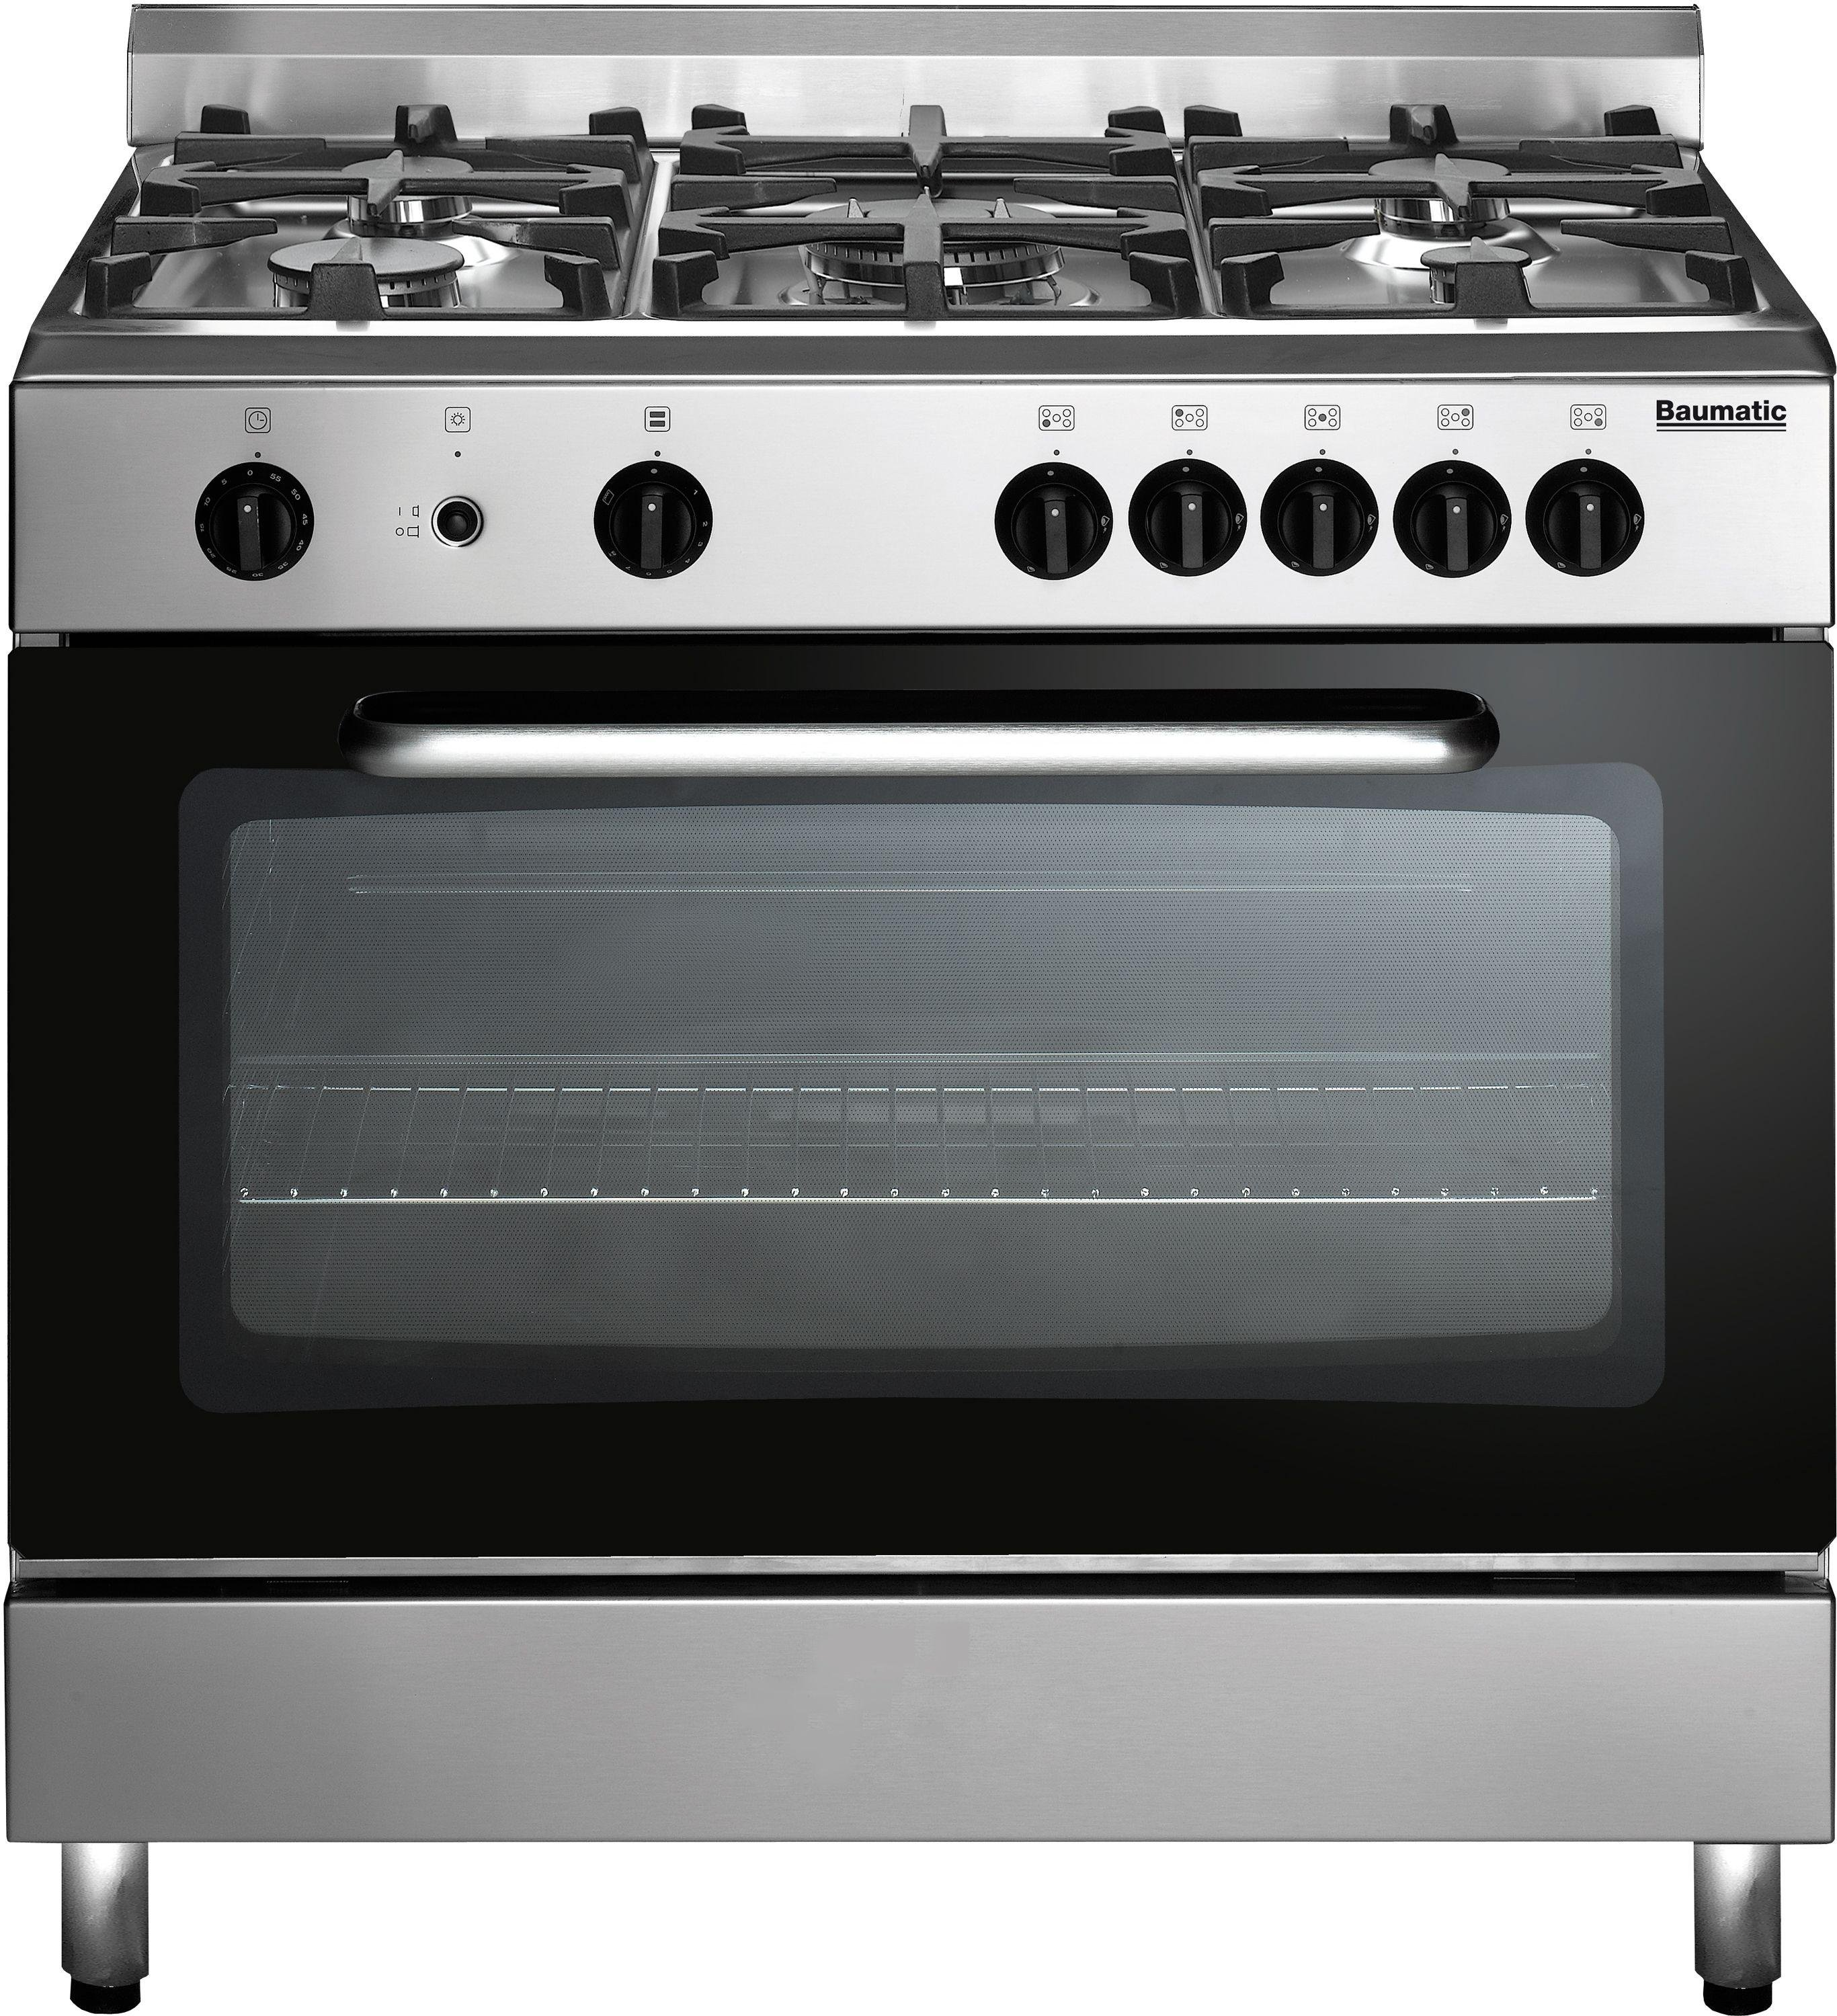 Image of Baumatic - BC1902TCSS 90cm - Gas Range Cooker - Stainless Steel